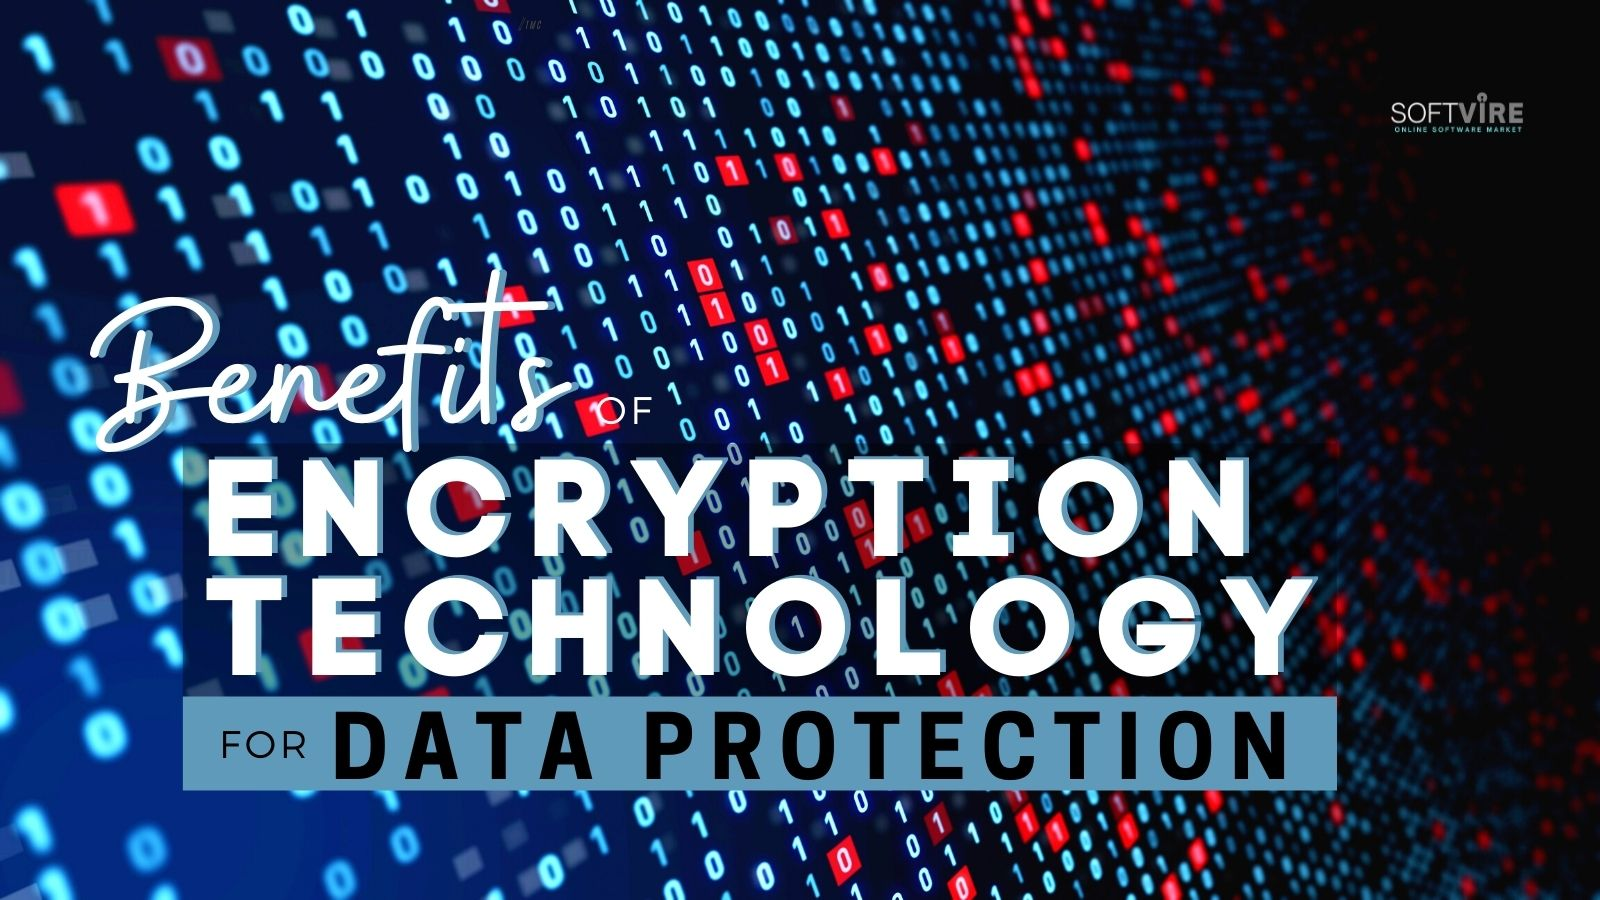 Benefits of Encryption Technology for Business and Consumer Data - Softvire Global Market